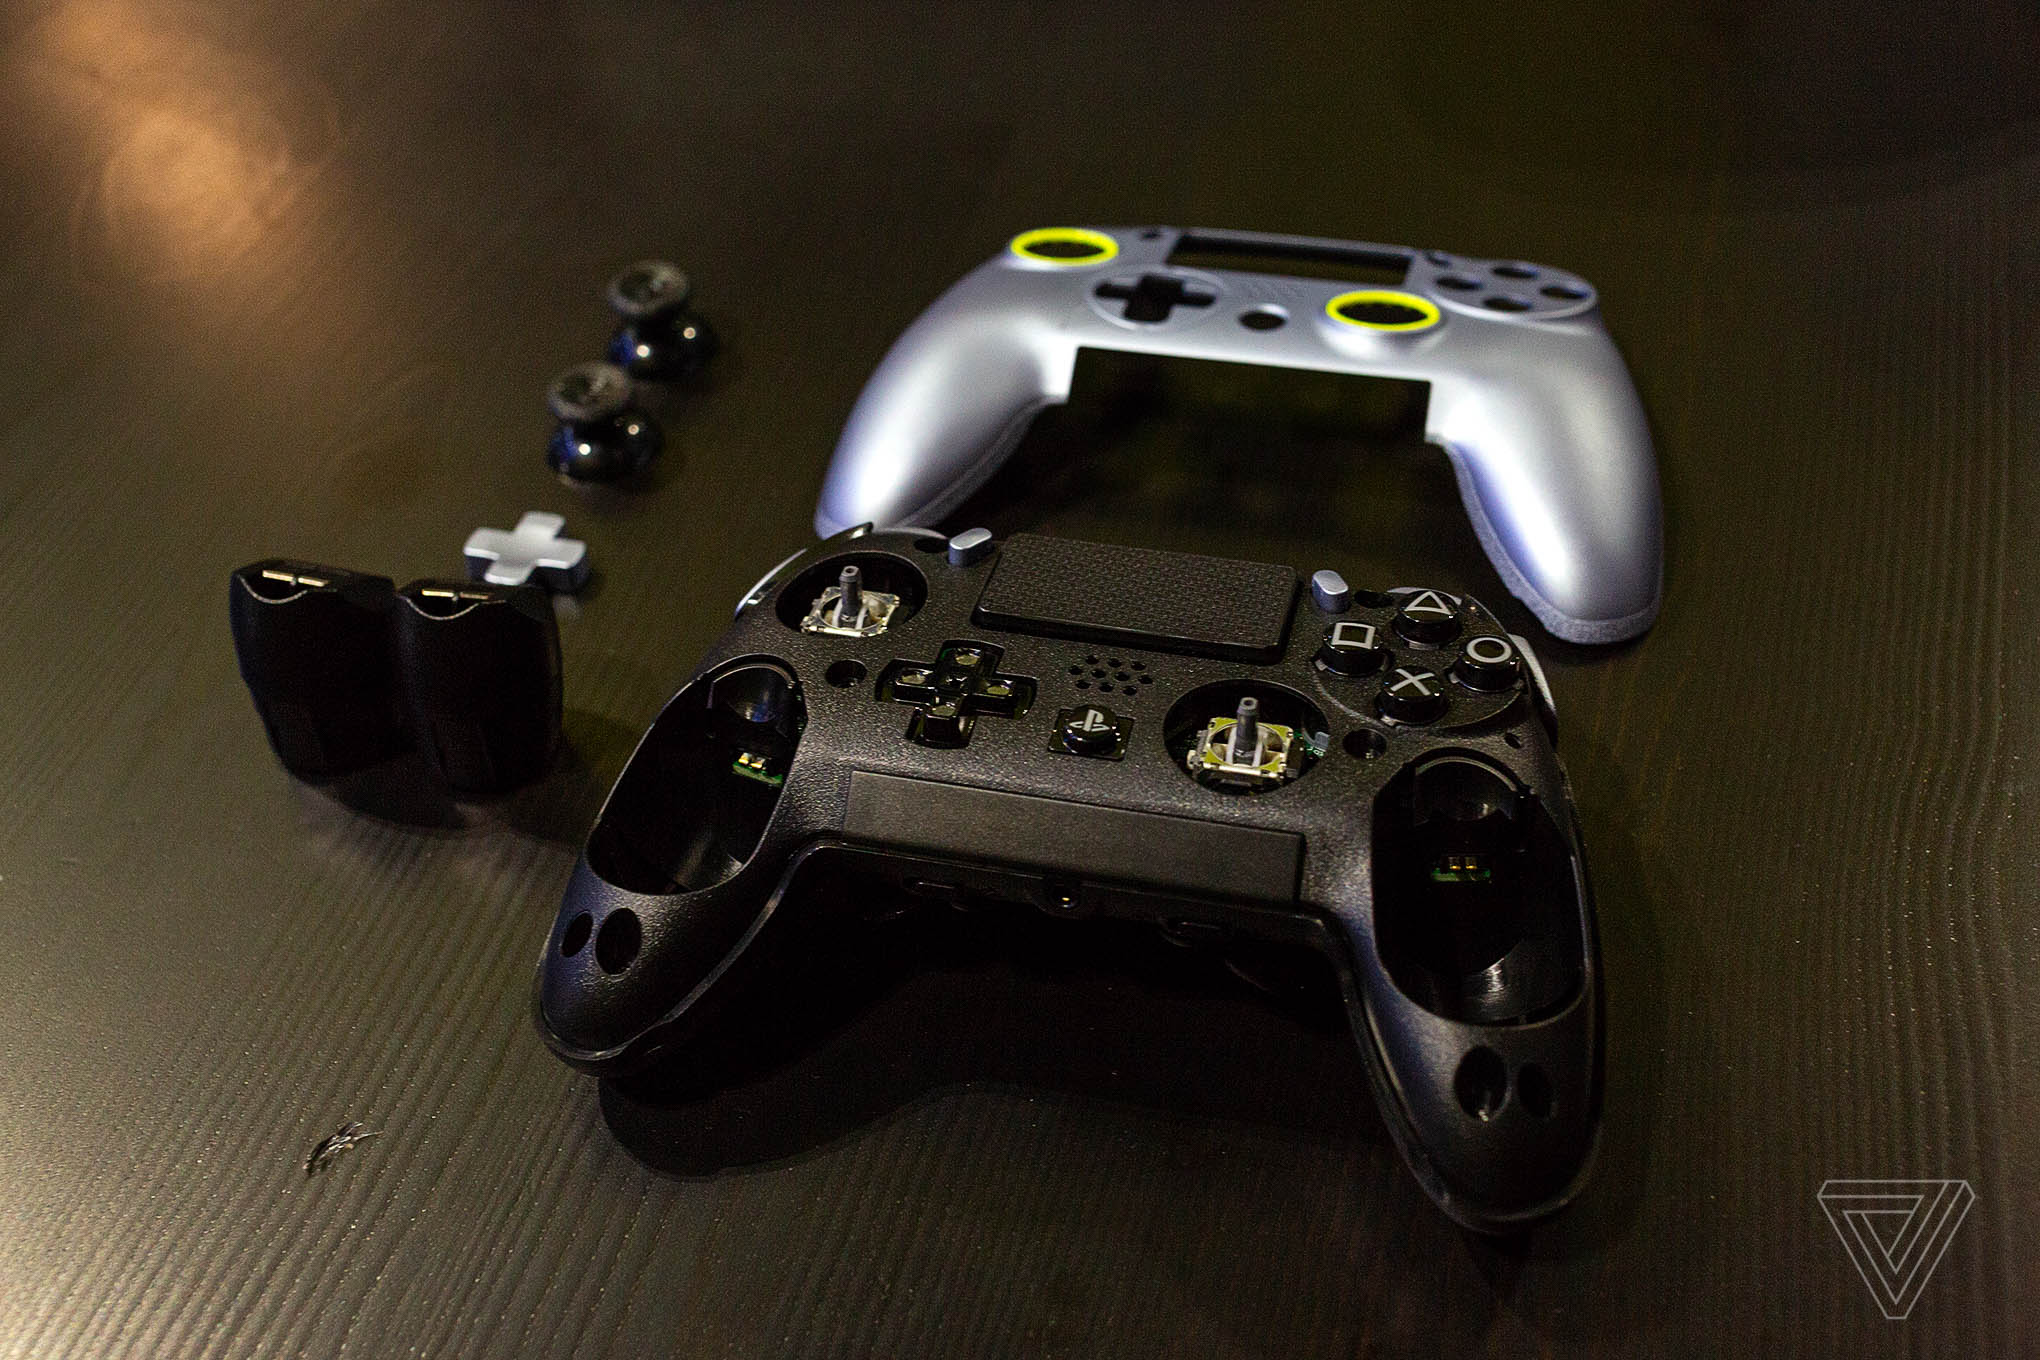 The Scuf Vantage is a Fortnite player's dream PS4 controller - The Verge